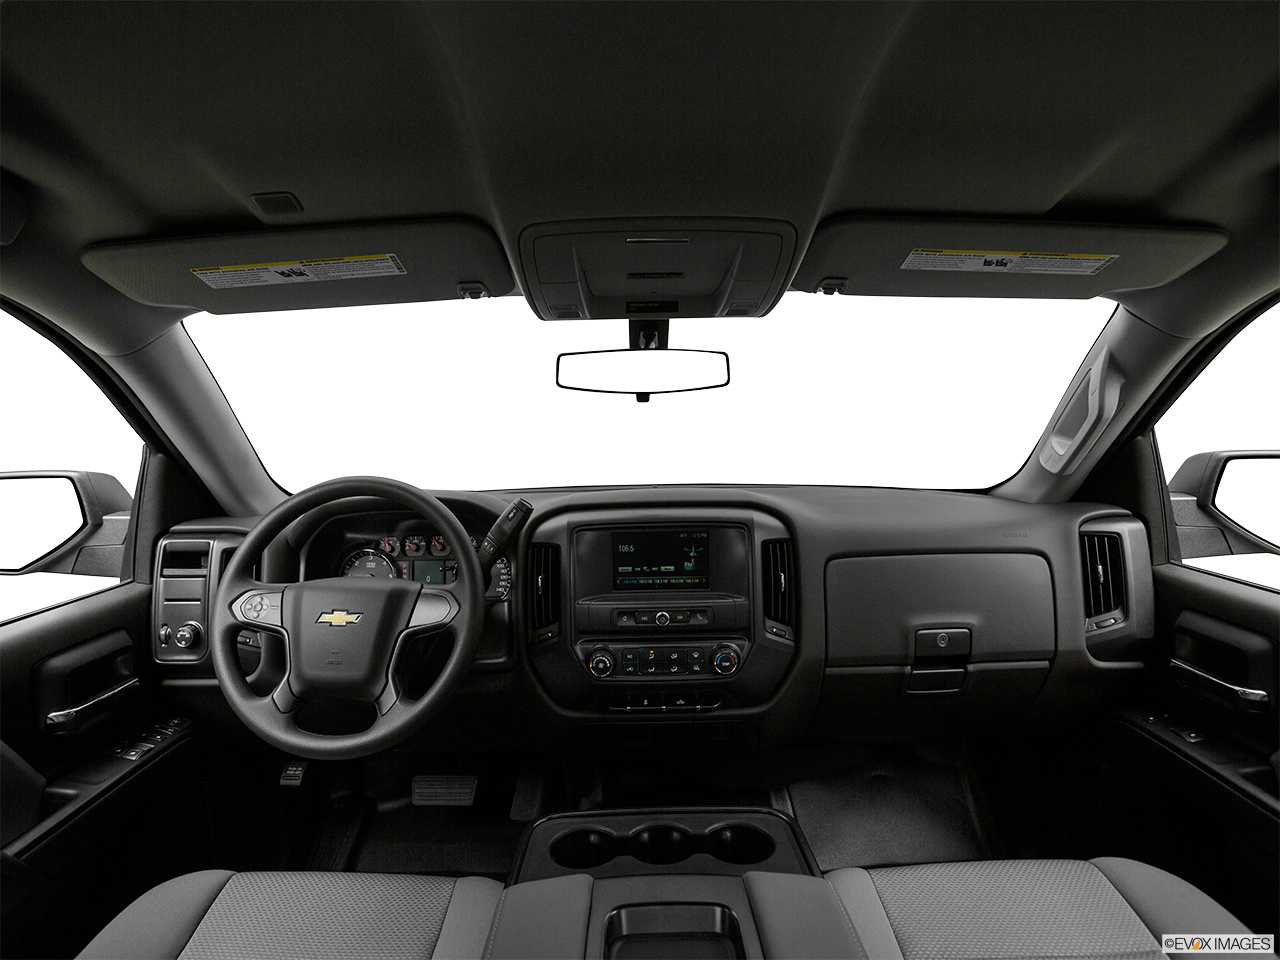 Chevrolet Silverado 2018 1500 Base, Saudi Arabia, Centered wide dash shot